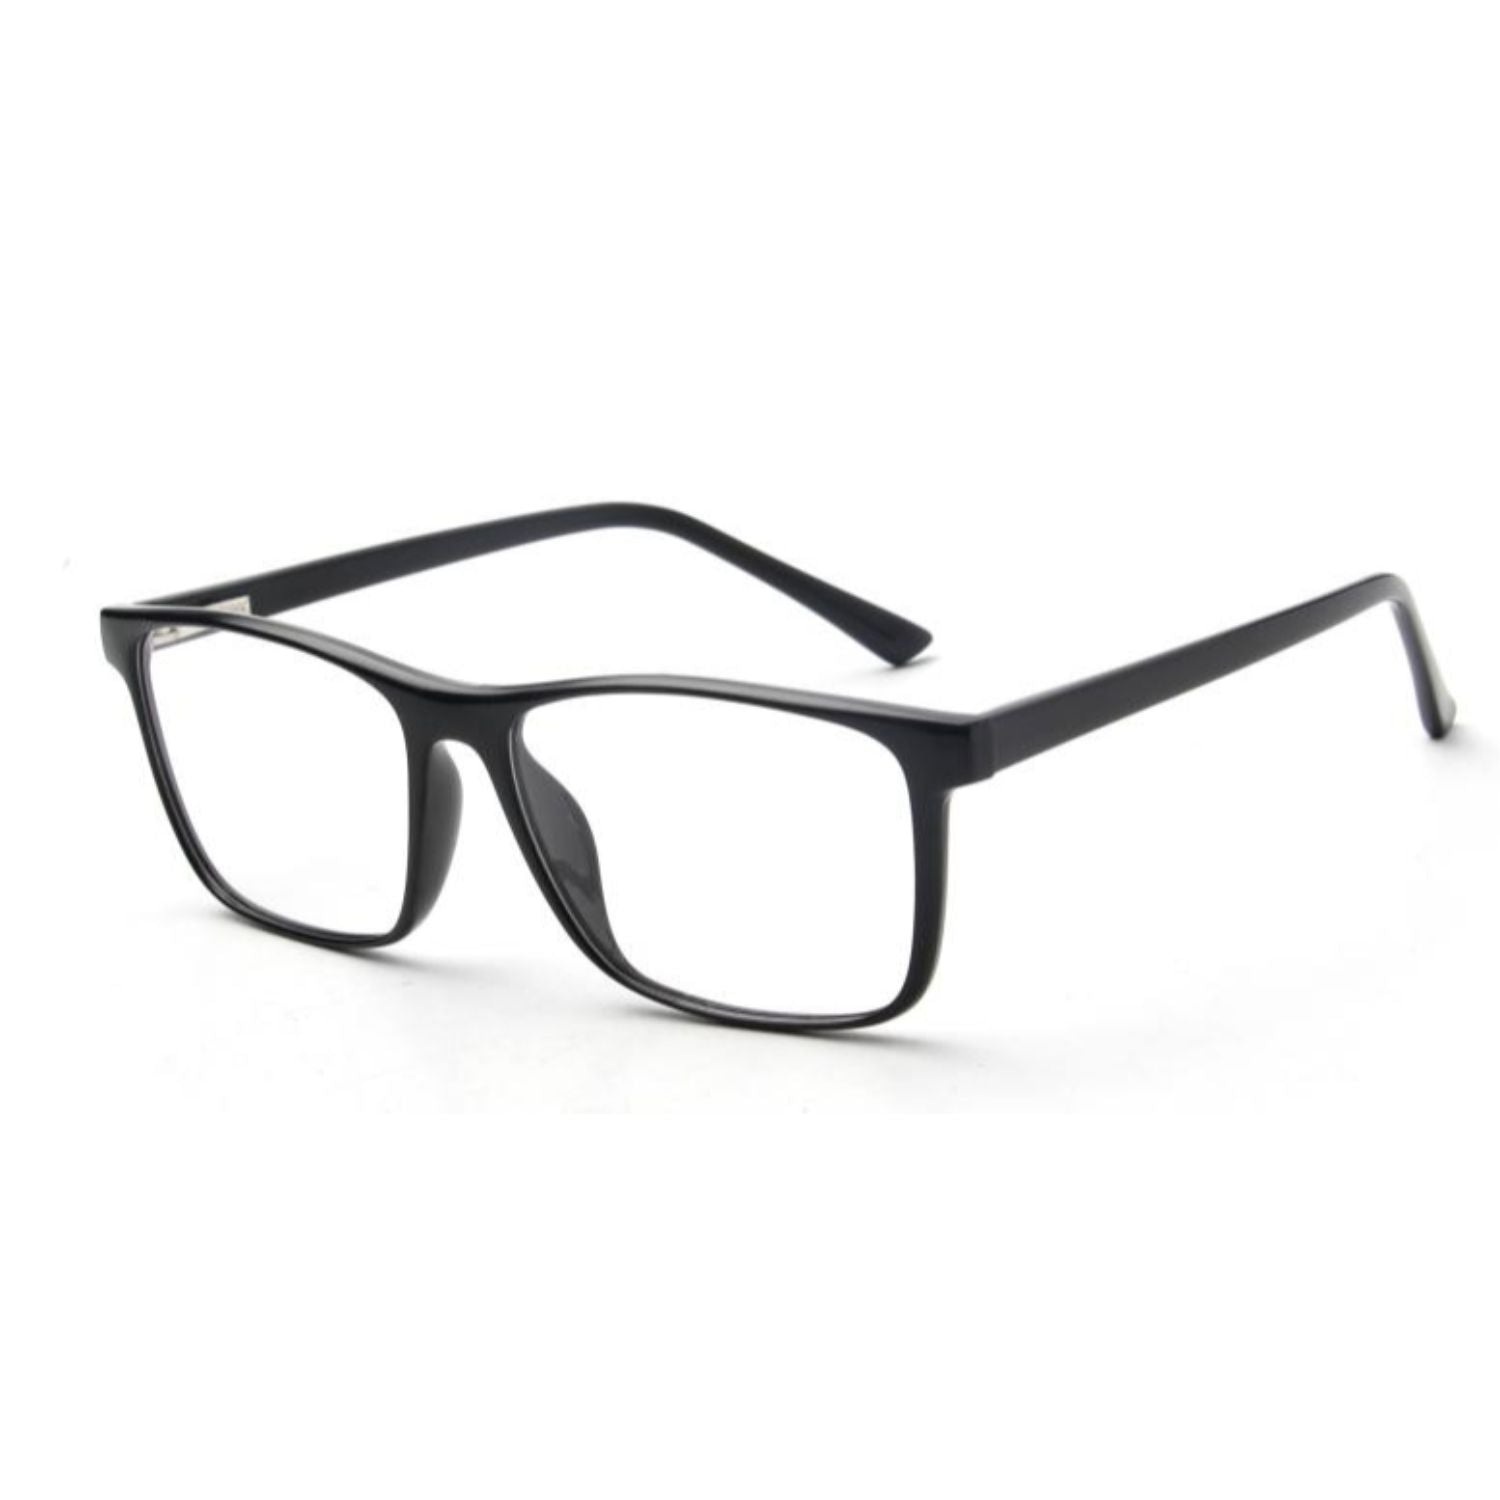 OTR27 - Square Classic Optical Eyeglasses - Iris Fashion Inc. | Wholesale Sunglasses and Glasses